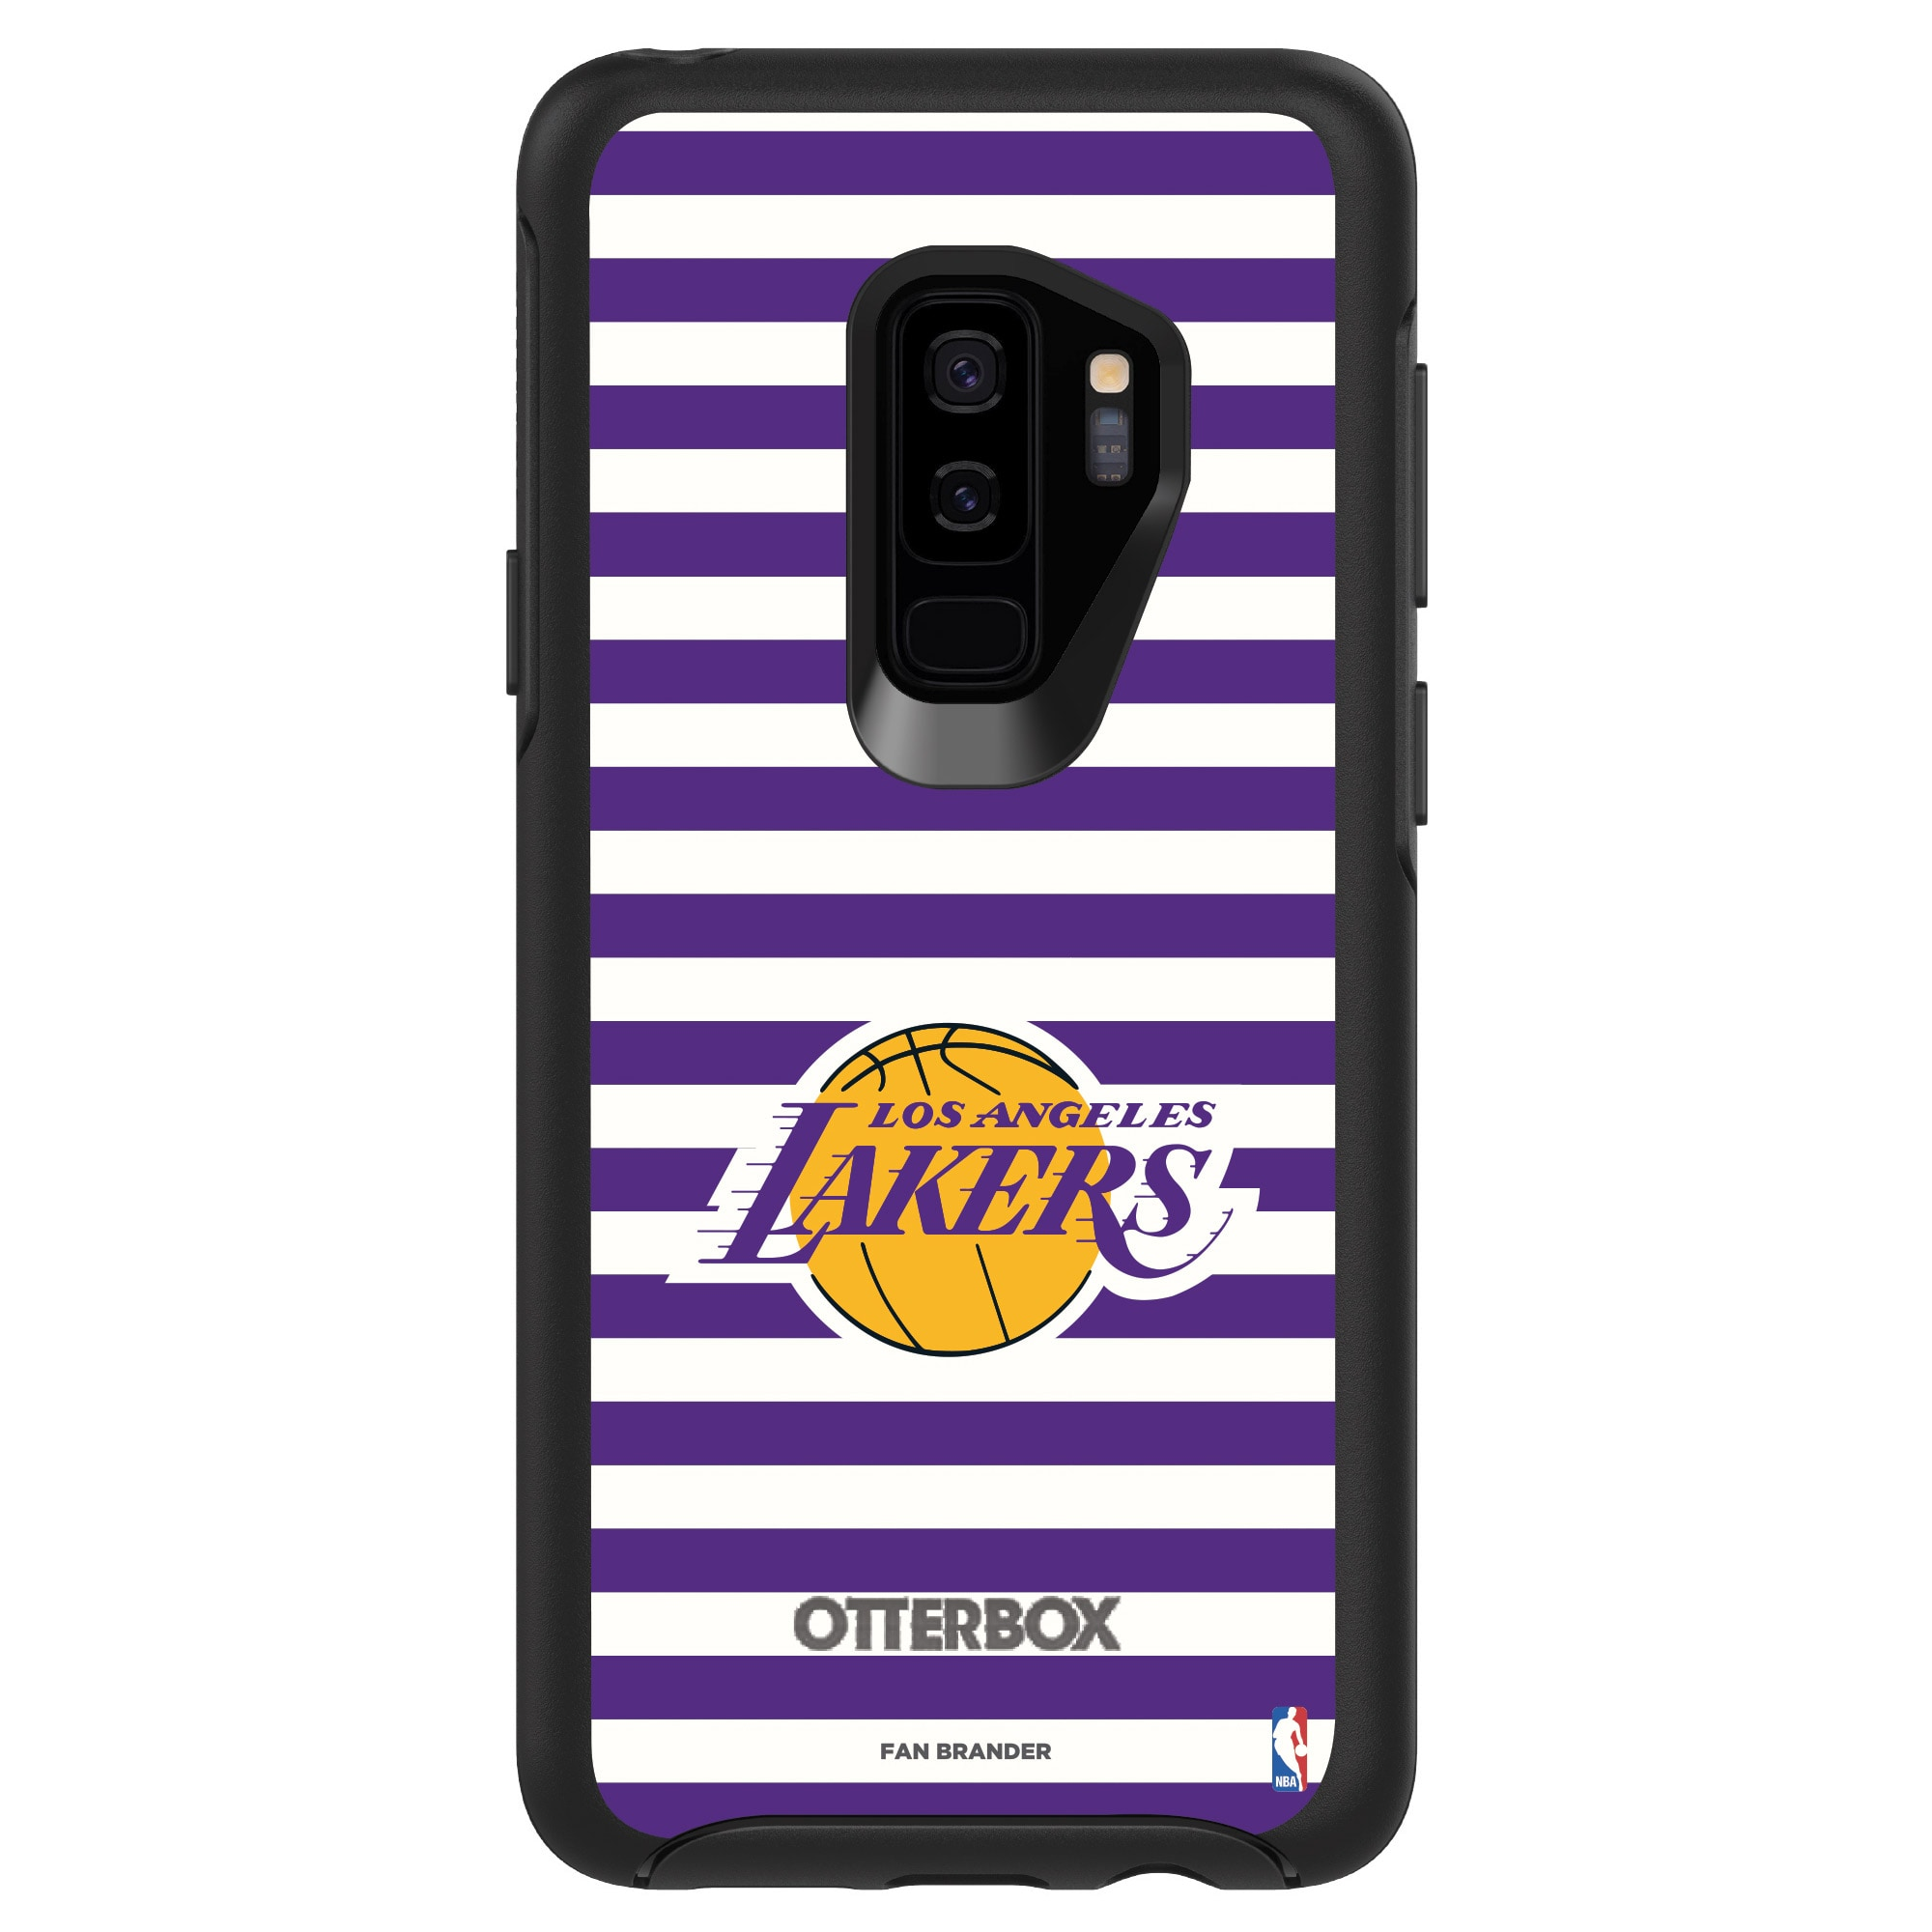 Los Angeles Lakers OtterBox Galaxy Symmetry Striped Design Case